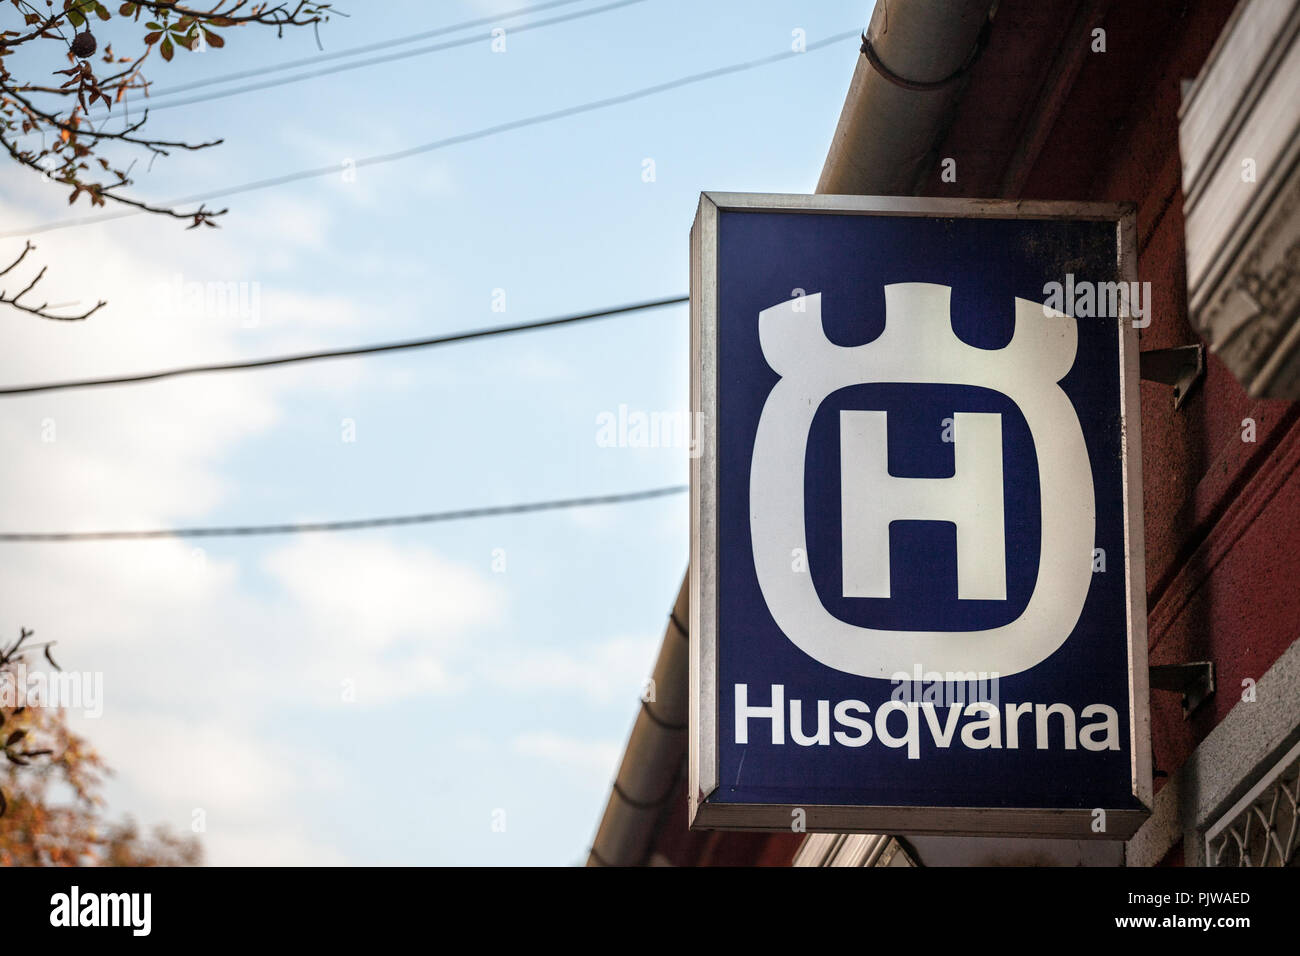 PANCEVO, SERBIA - SEPTEMBER 8, 2018: Husqvarna logo on their main shop in Pancevo. Husqvarna is a Swedish manufacturer of outdoor power products sprea - Stock Image